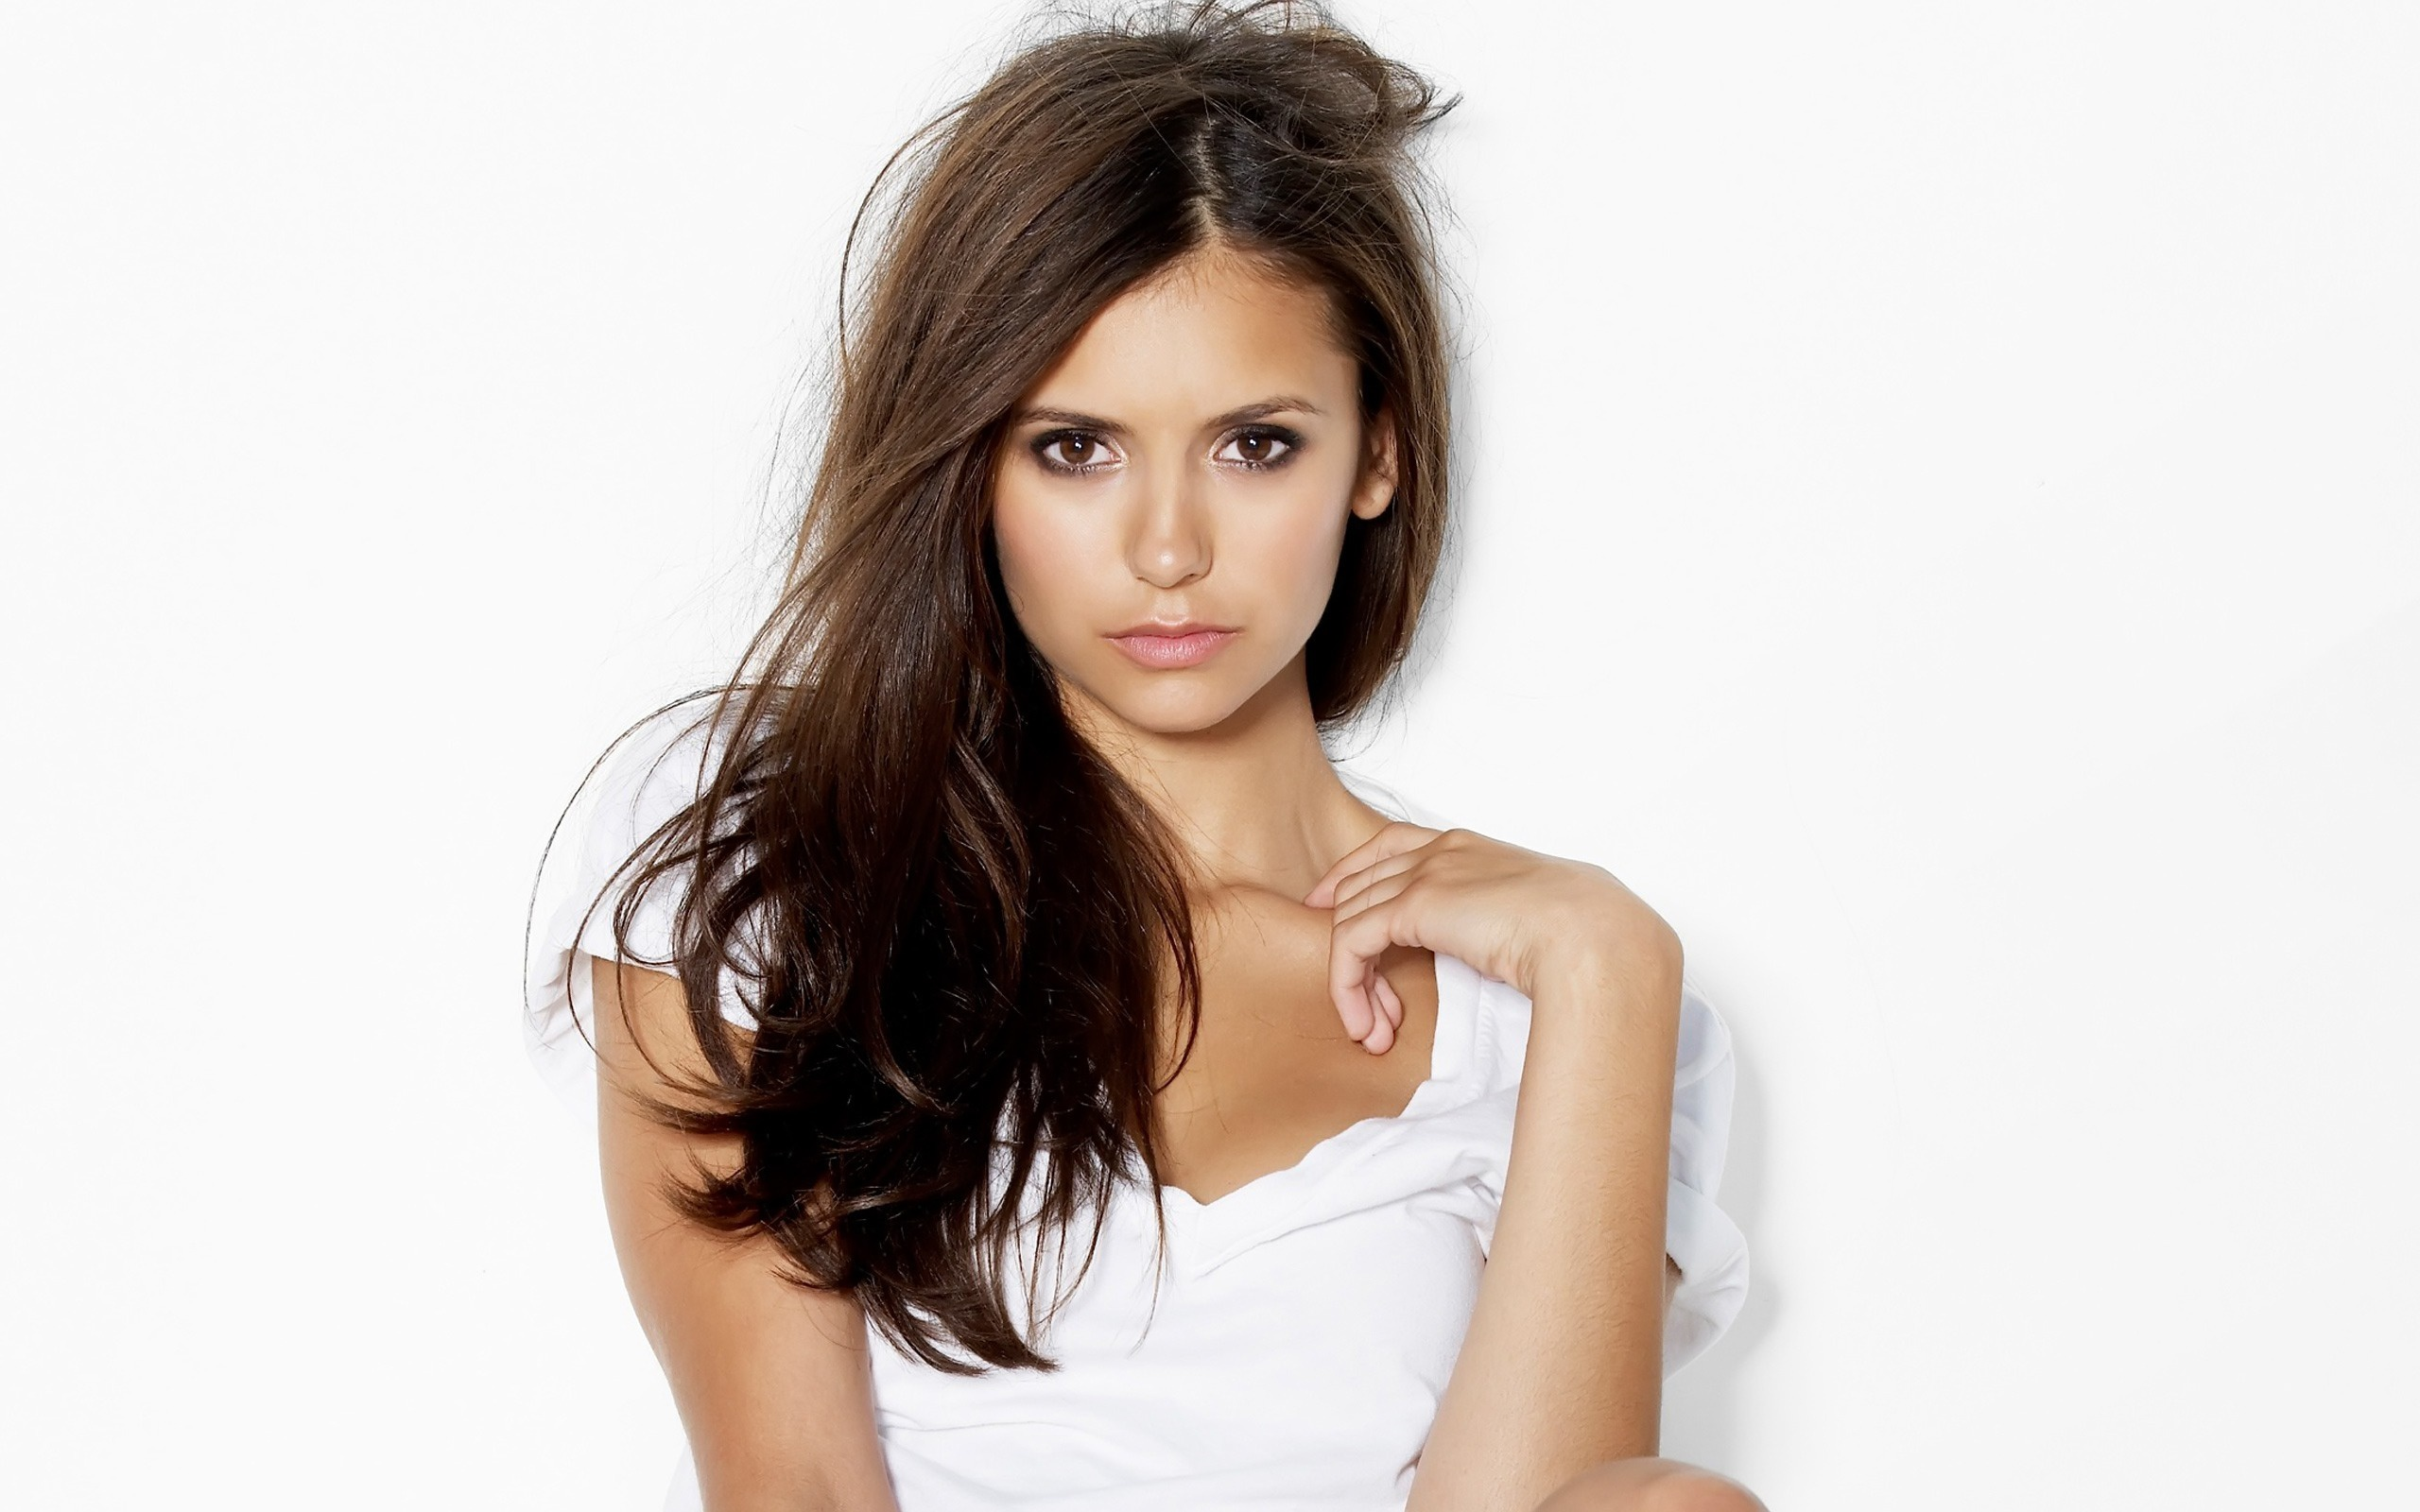 117 Nina Dobrev Wallpapers | HD Backgrounds - Wallpaper Abyss